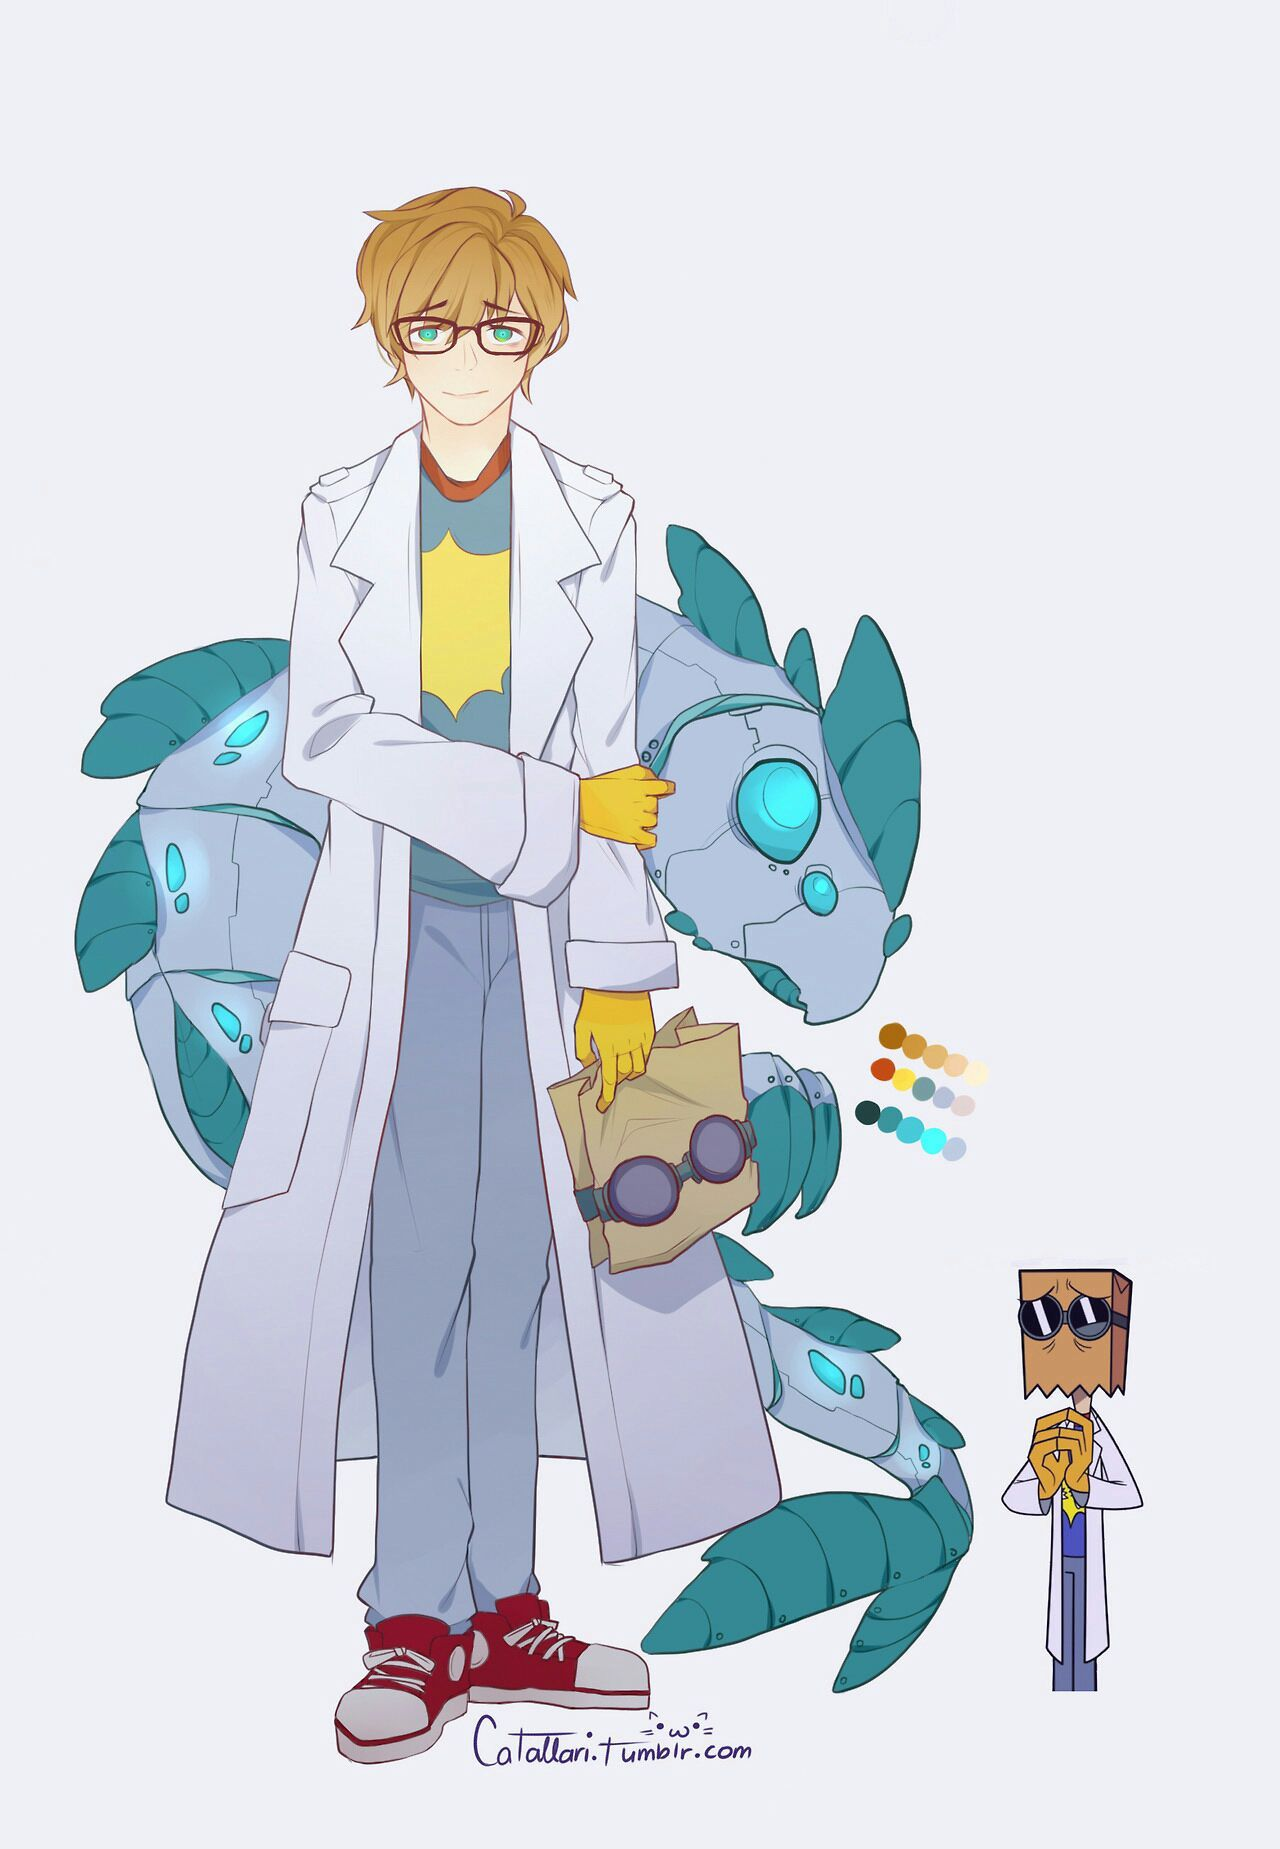 Aww Dr Flug looks so cute but is that his canon face